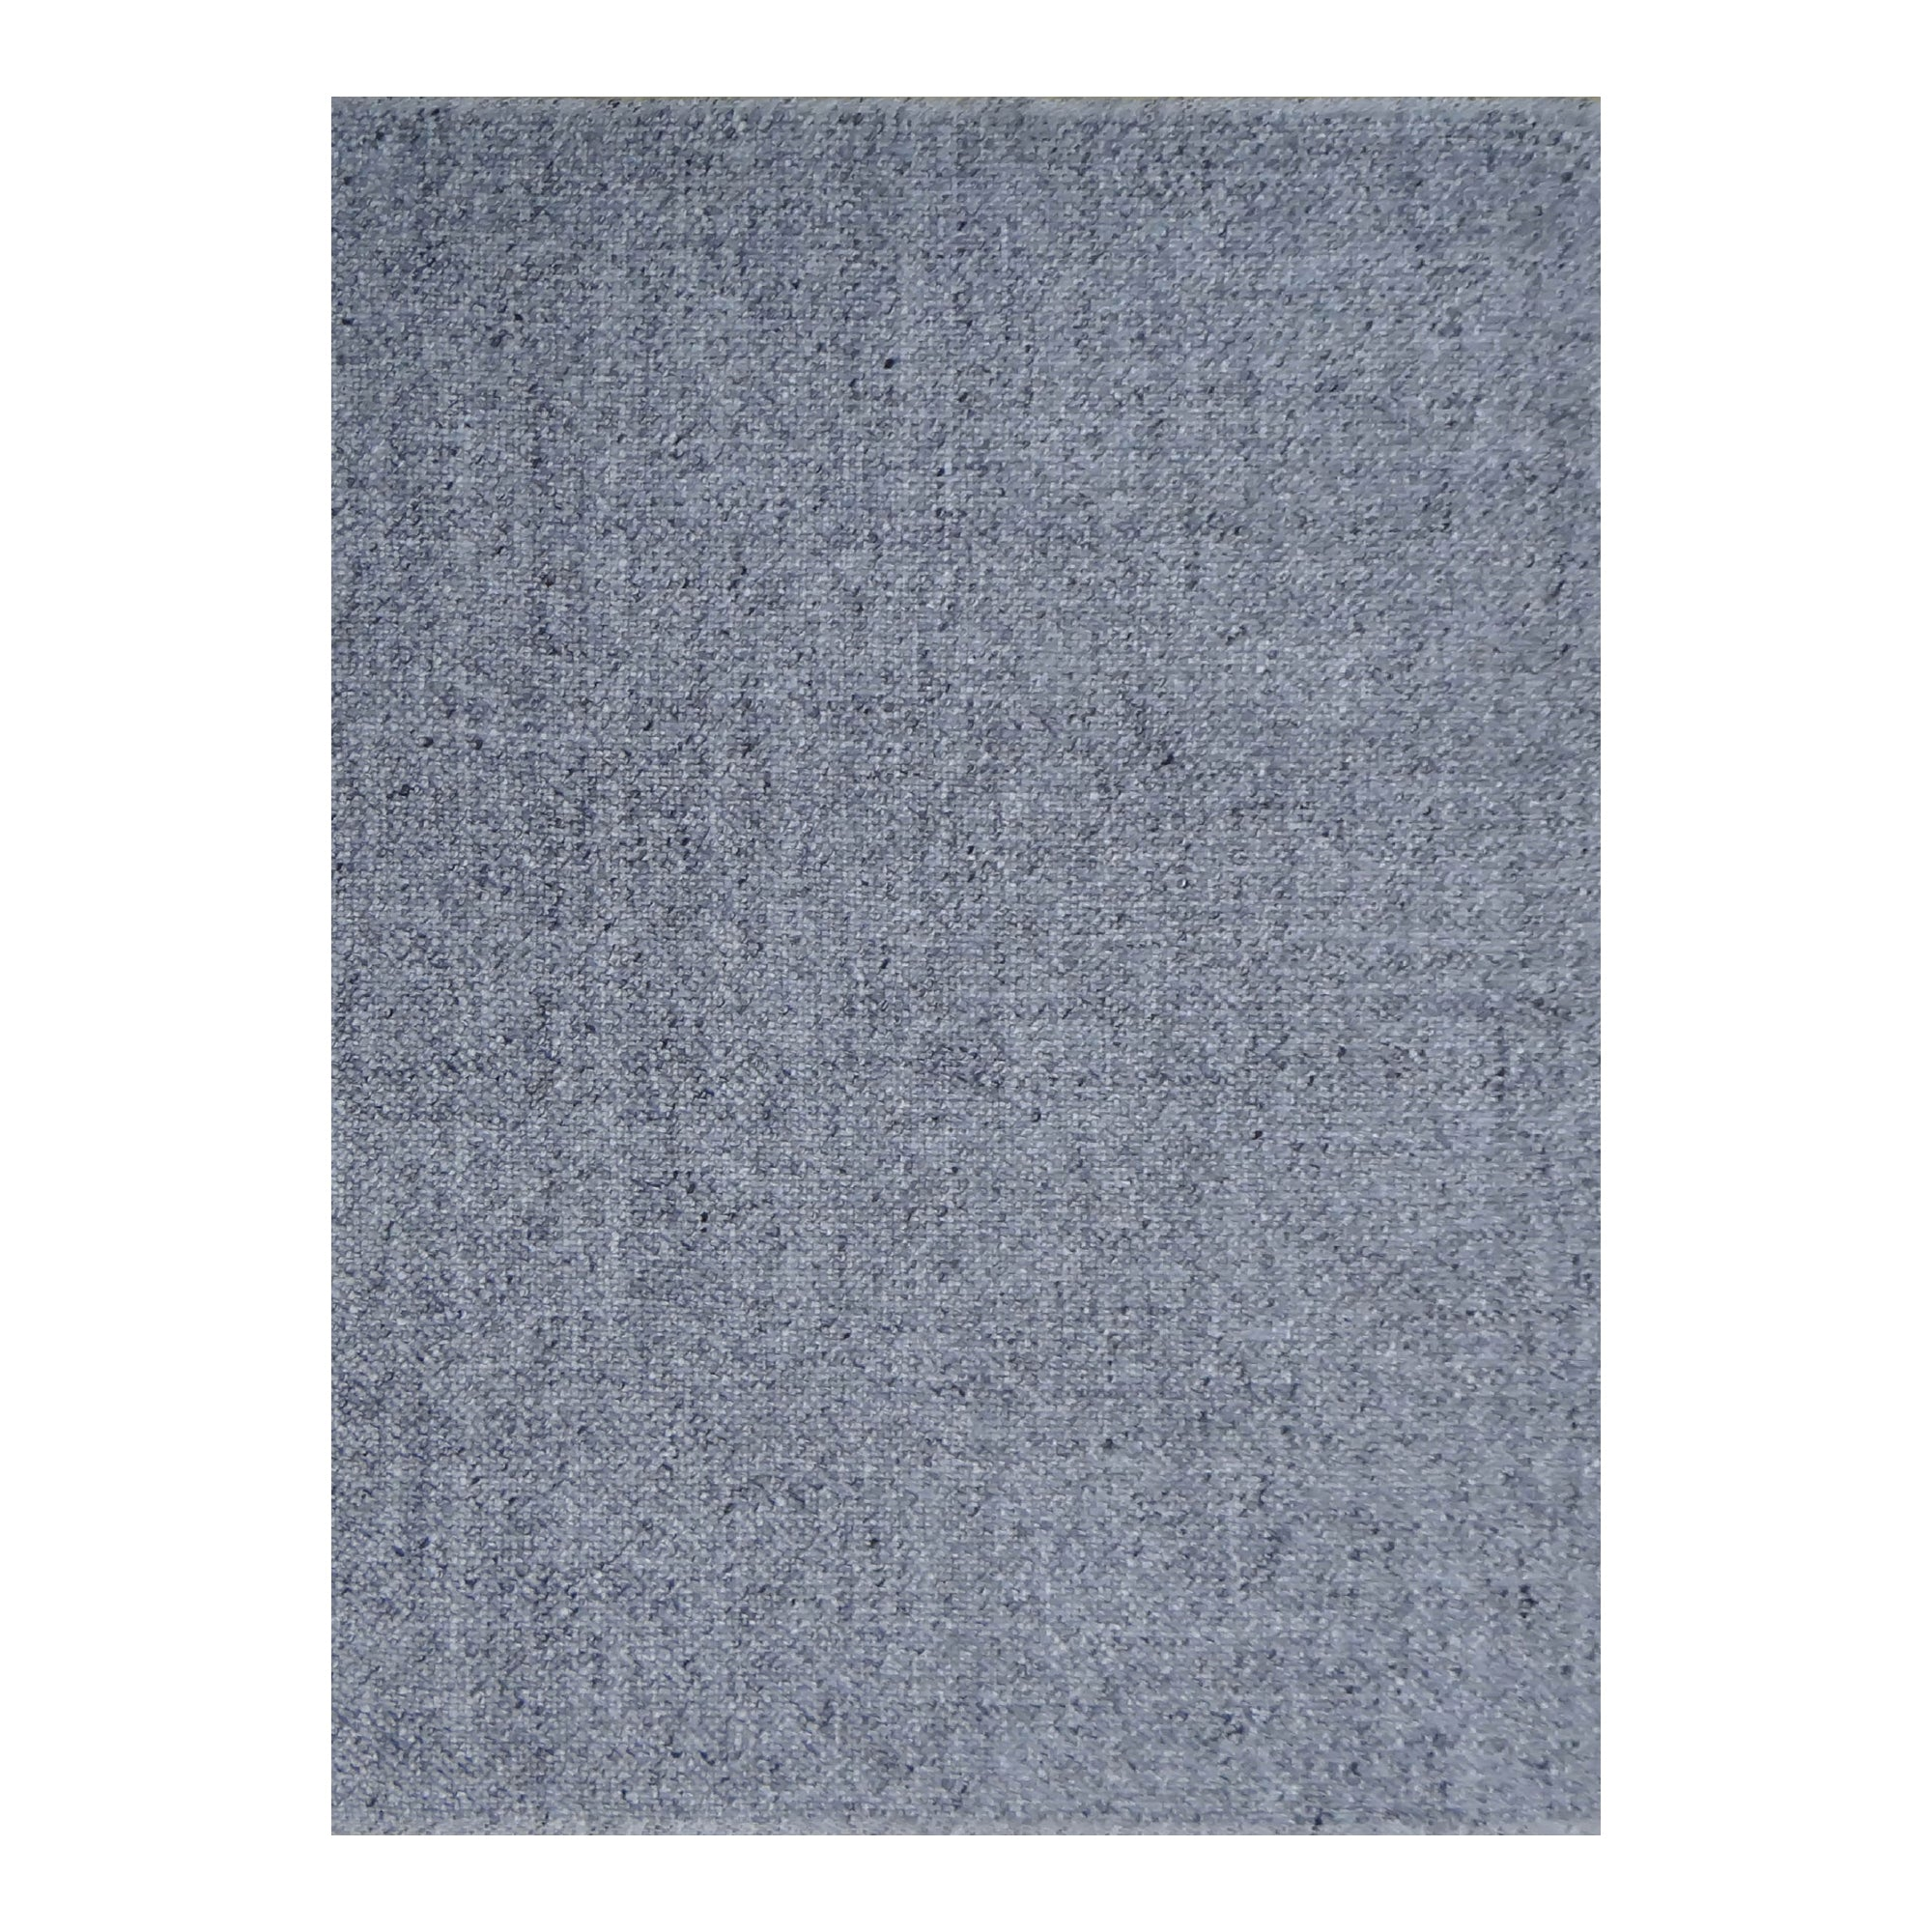 AMARILLO RUG 5X8, Silver - Tops-Dress